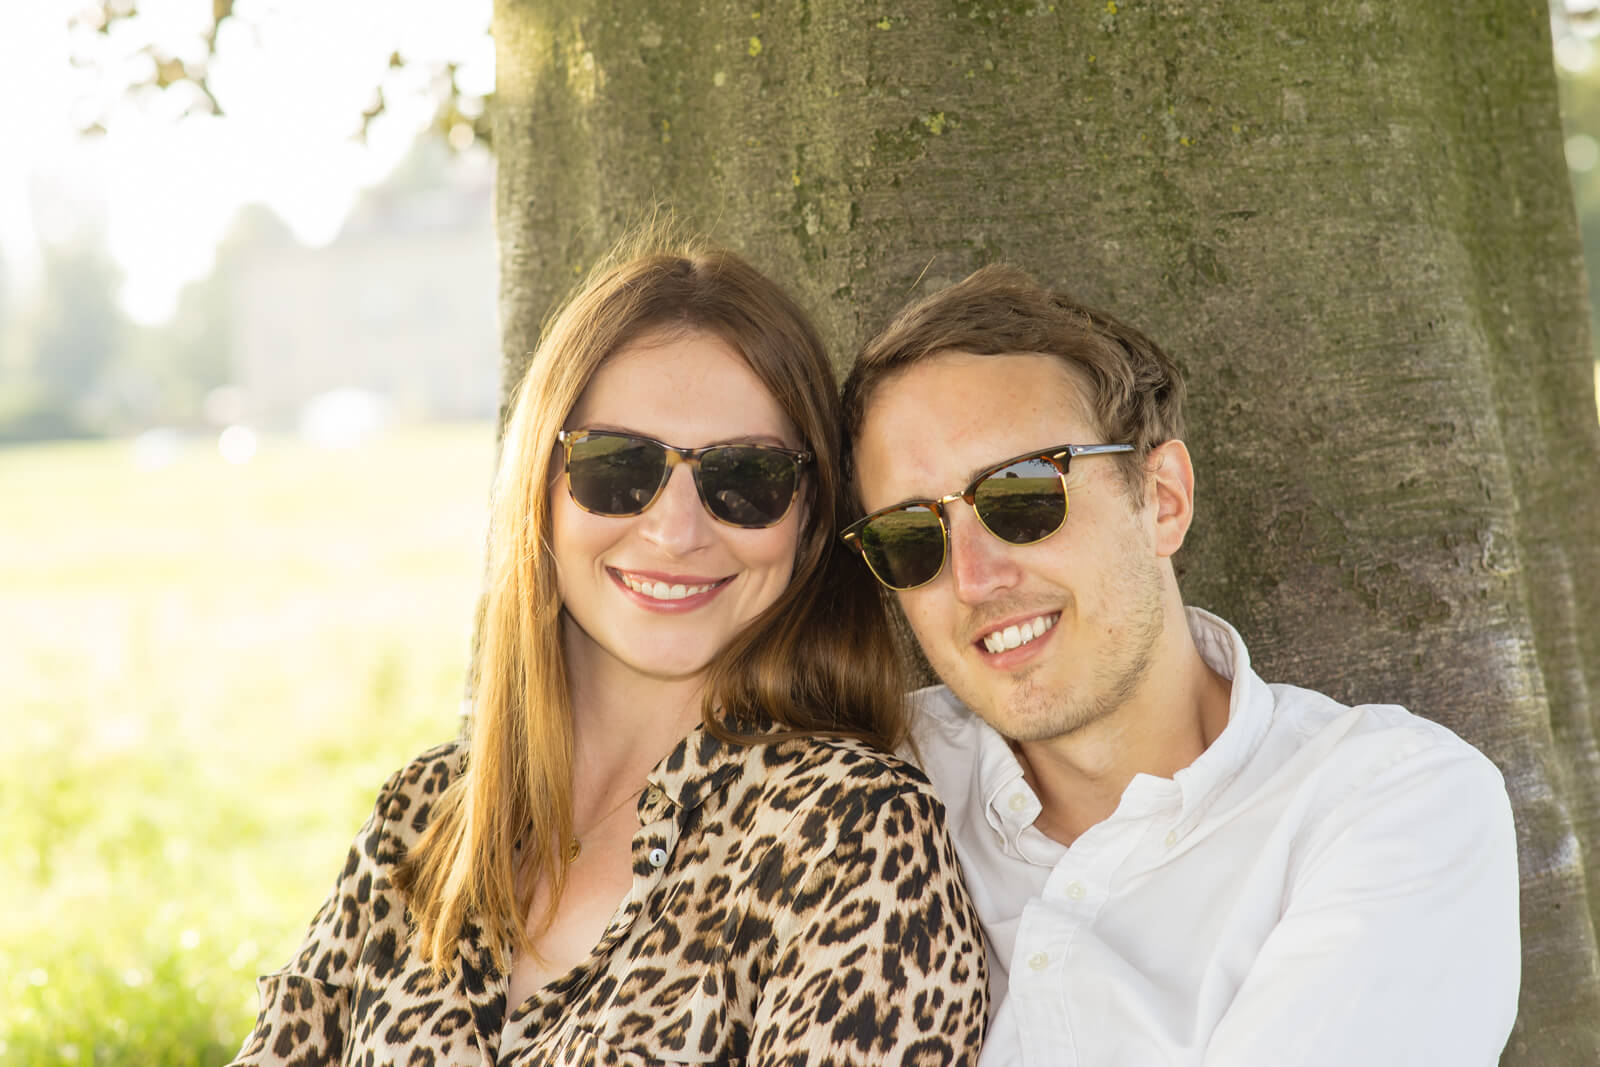 Engaged couple wearing sunglasses look at the camera on a bright hot day